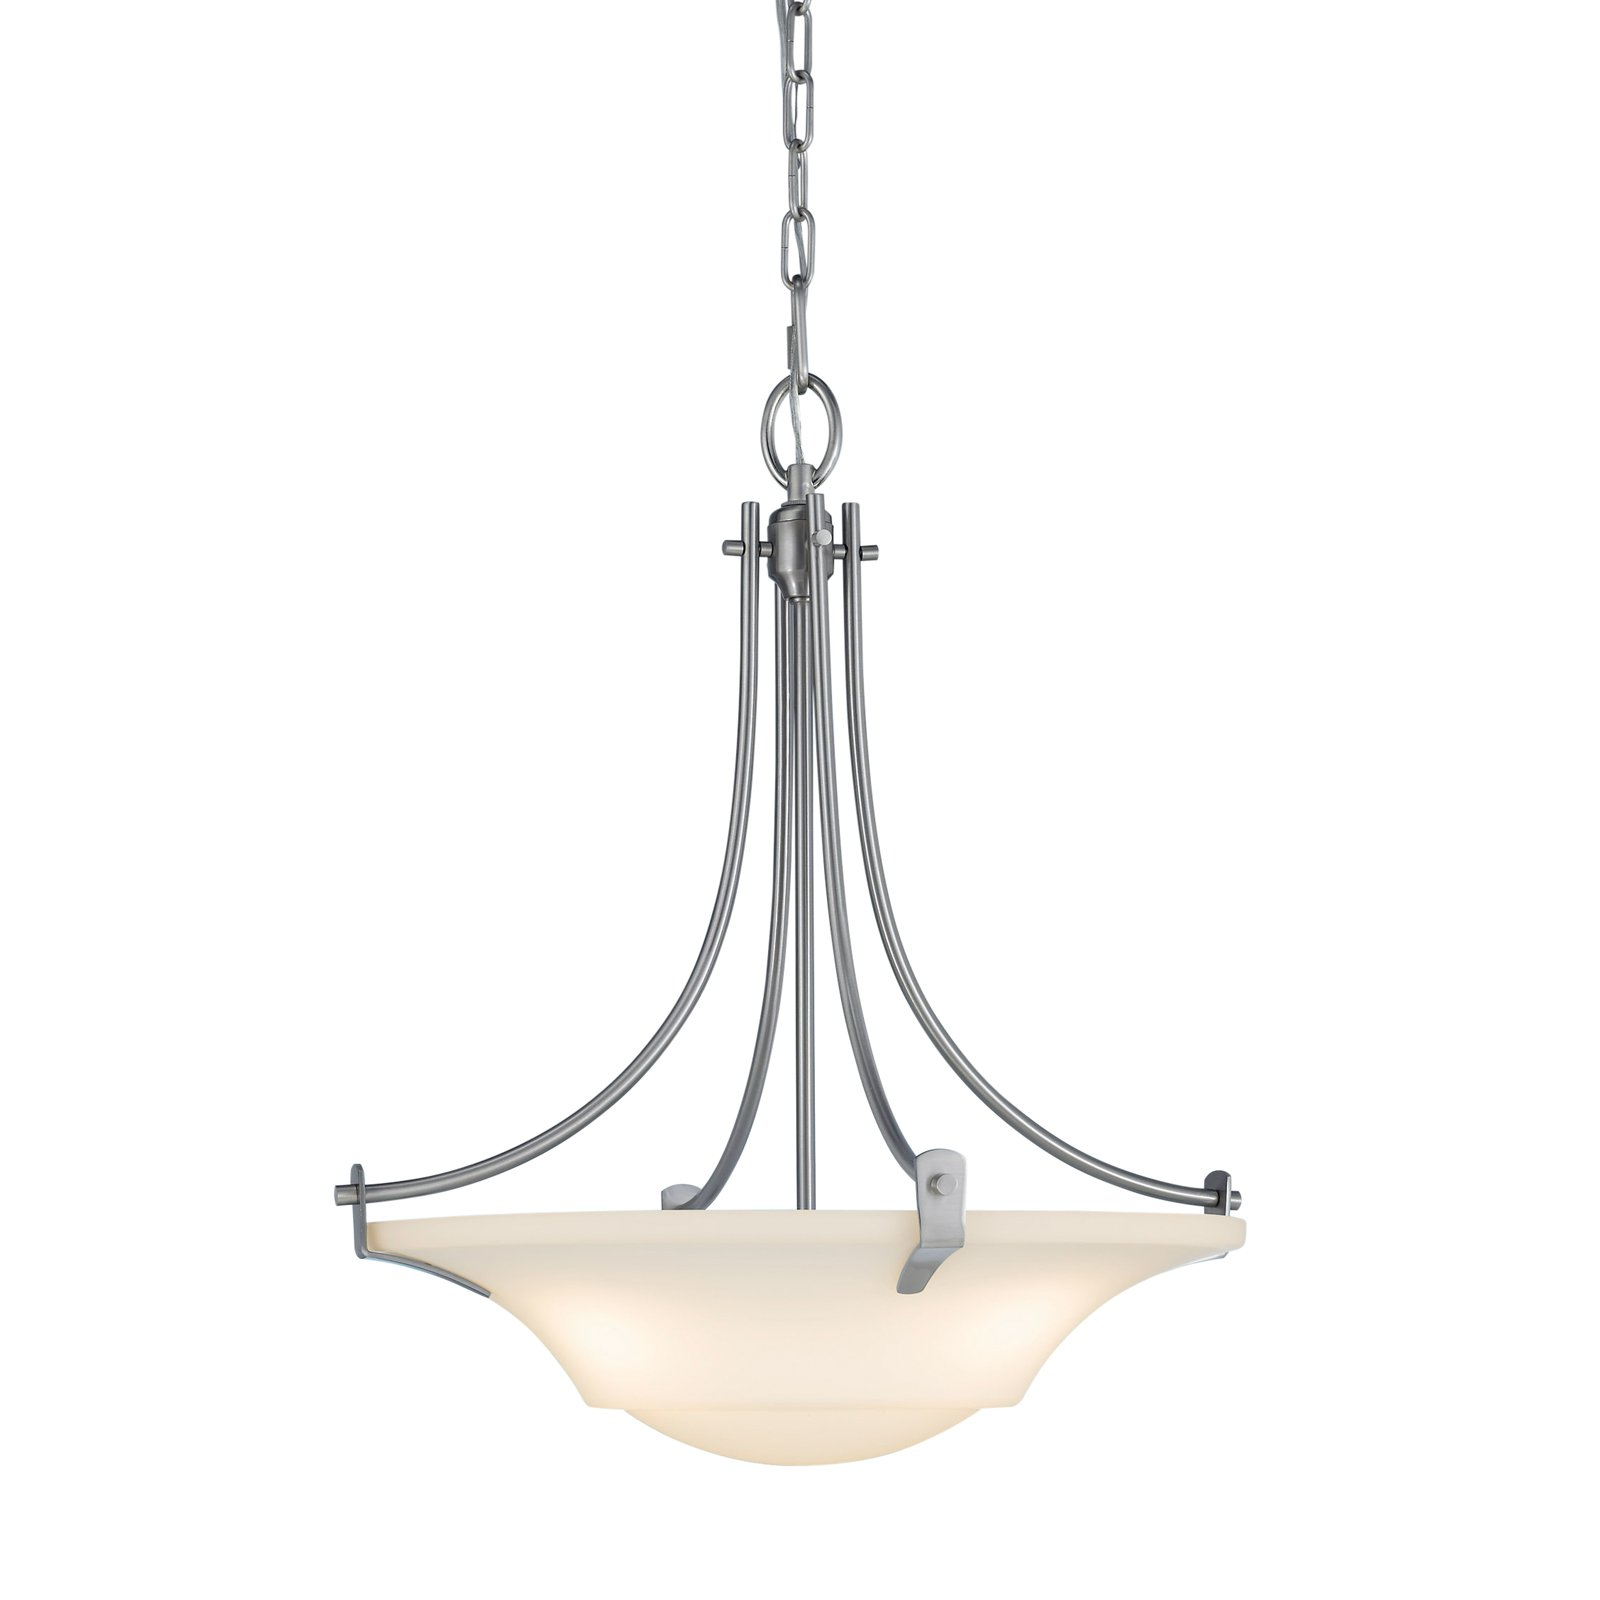 Feiss Barrington Pendant Light 18W in. Brushed Steel by Murray Feiss